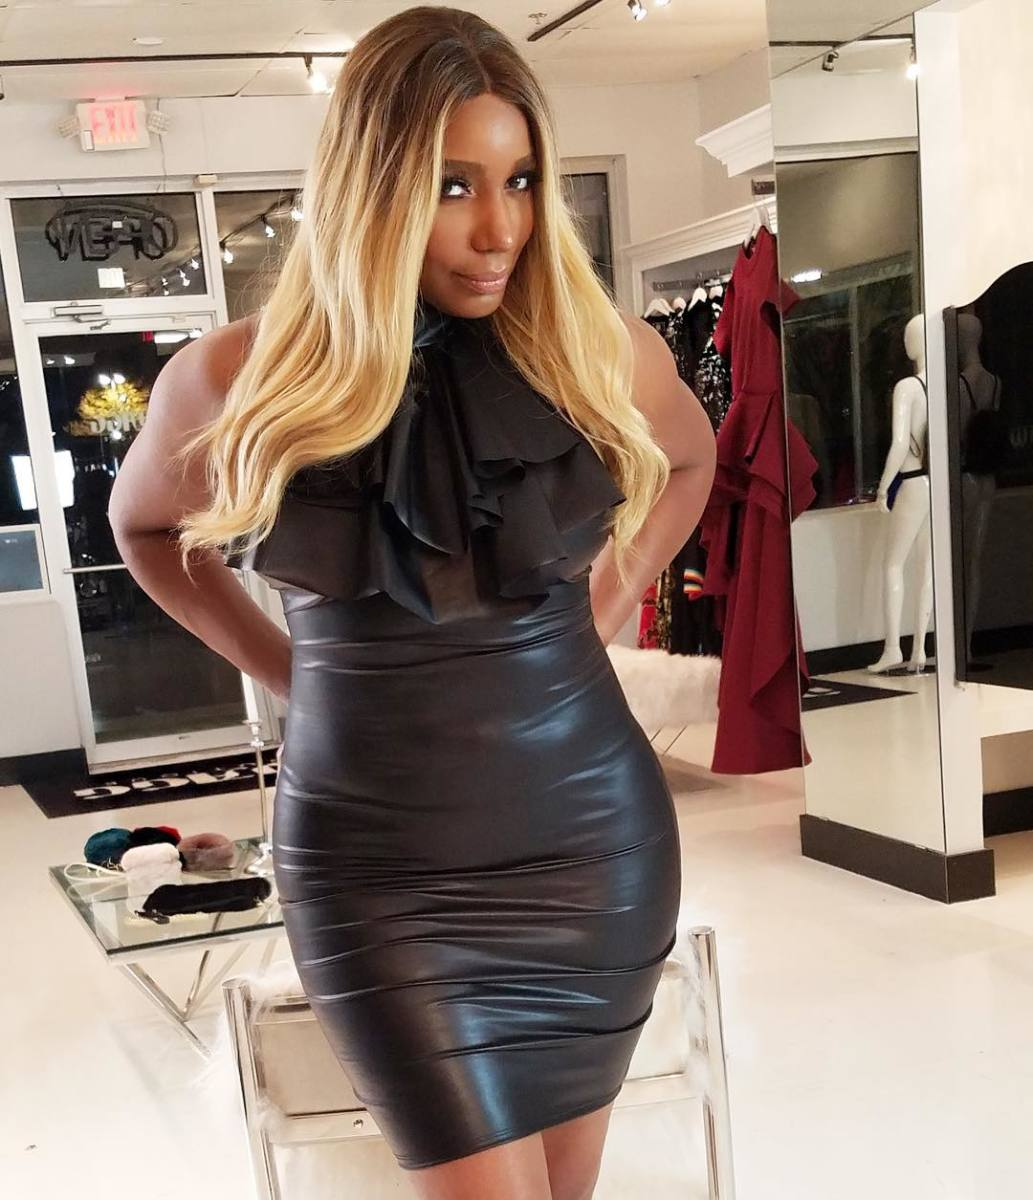 """nene-leakes-fans-tell-her-that-shes-naturally-pretty-under-all-that-glam-see-the-video"""